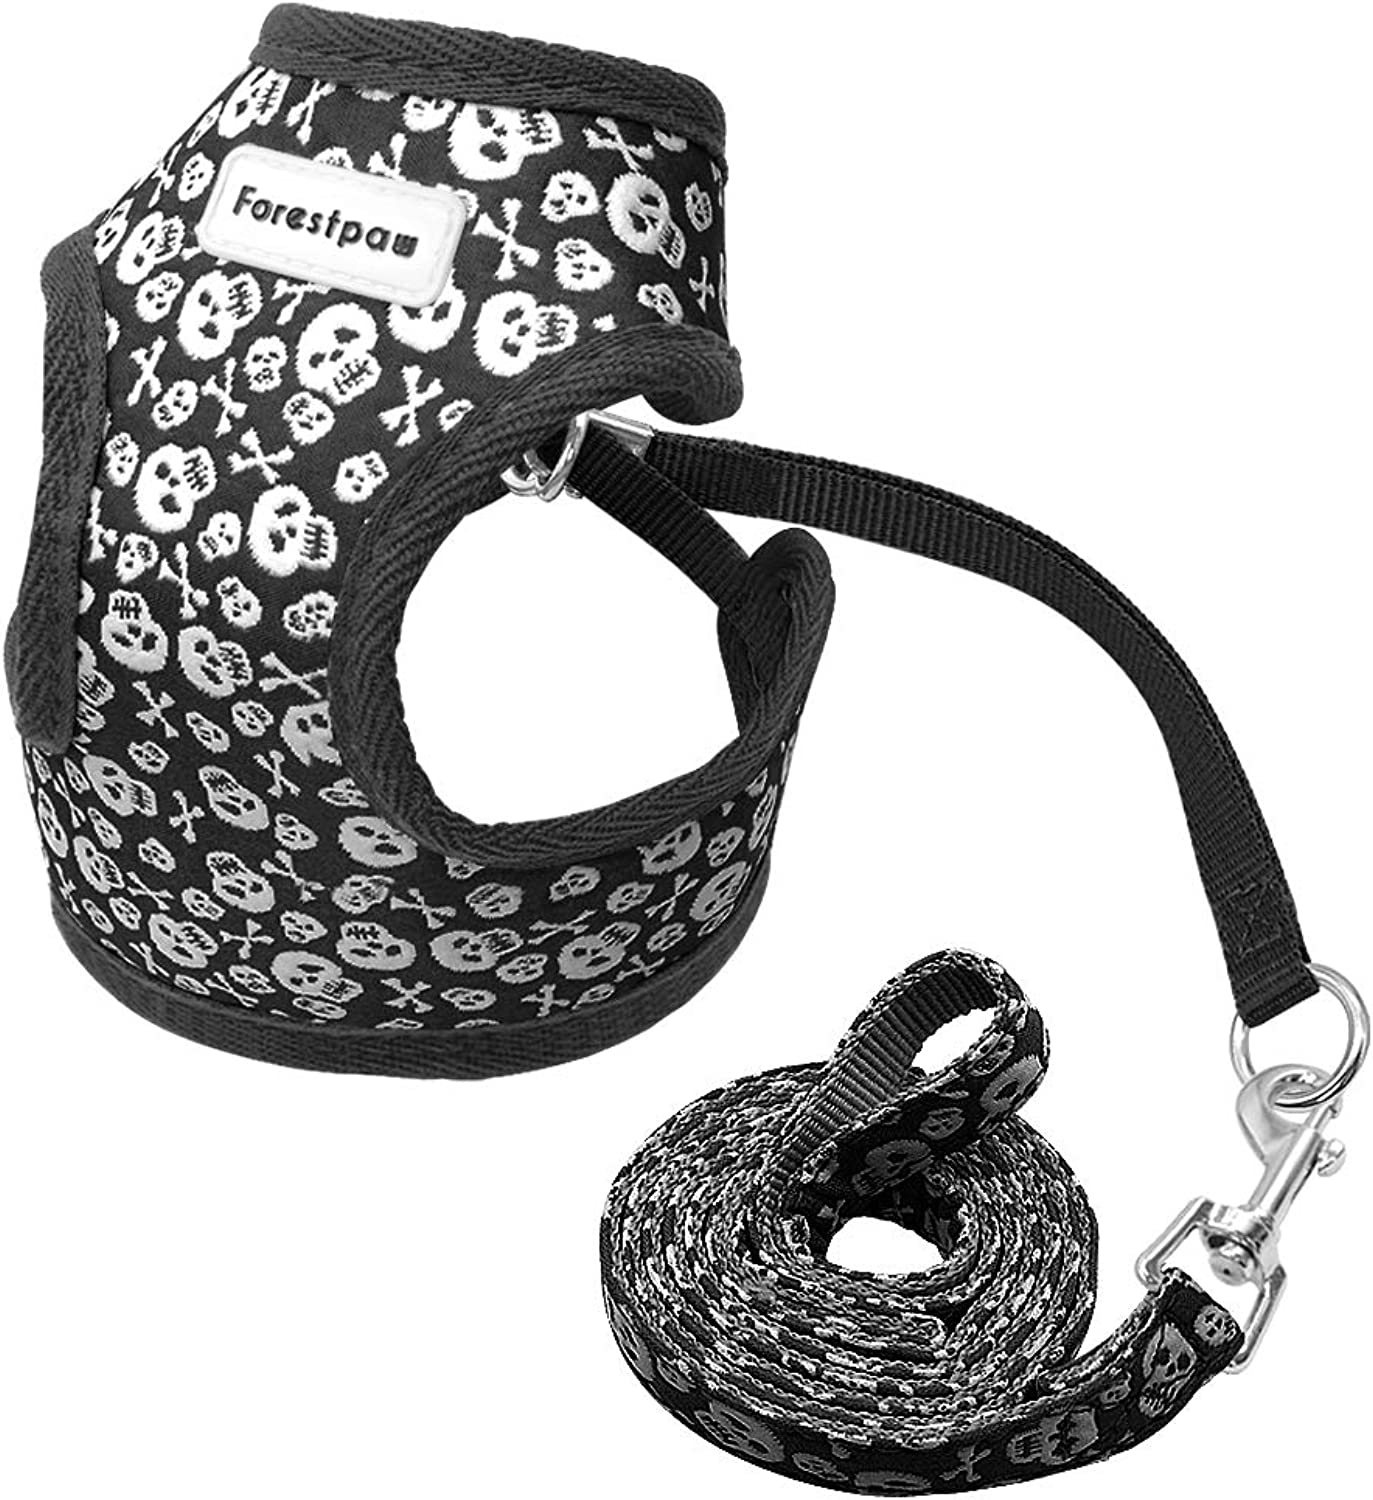 Forestpaw Pirate Skull Pattern Small Dog Vest Harness Leash Set  Cute Pet Harness for Walking Cats Puppy Small Dogs,Black,S